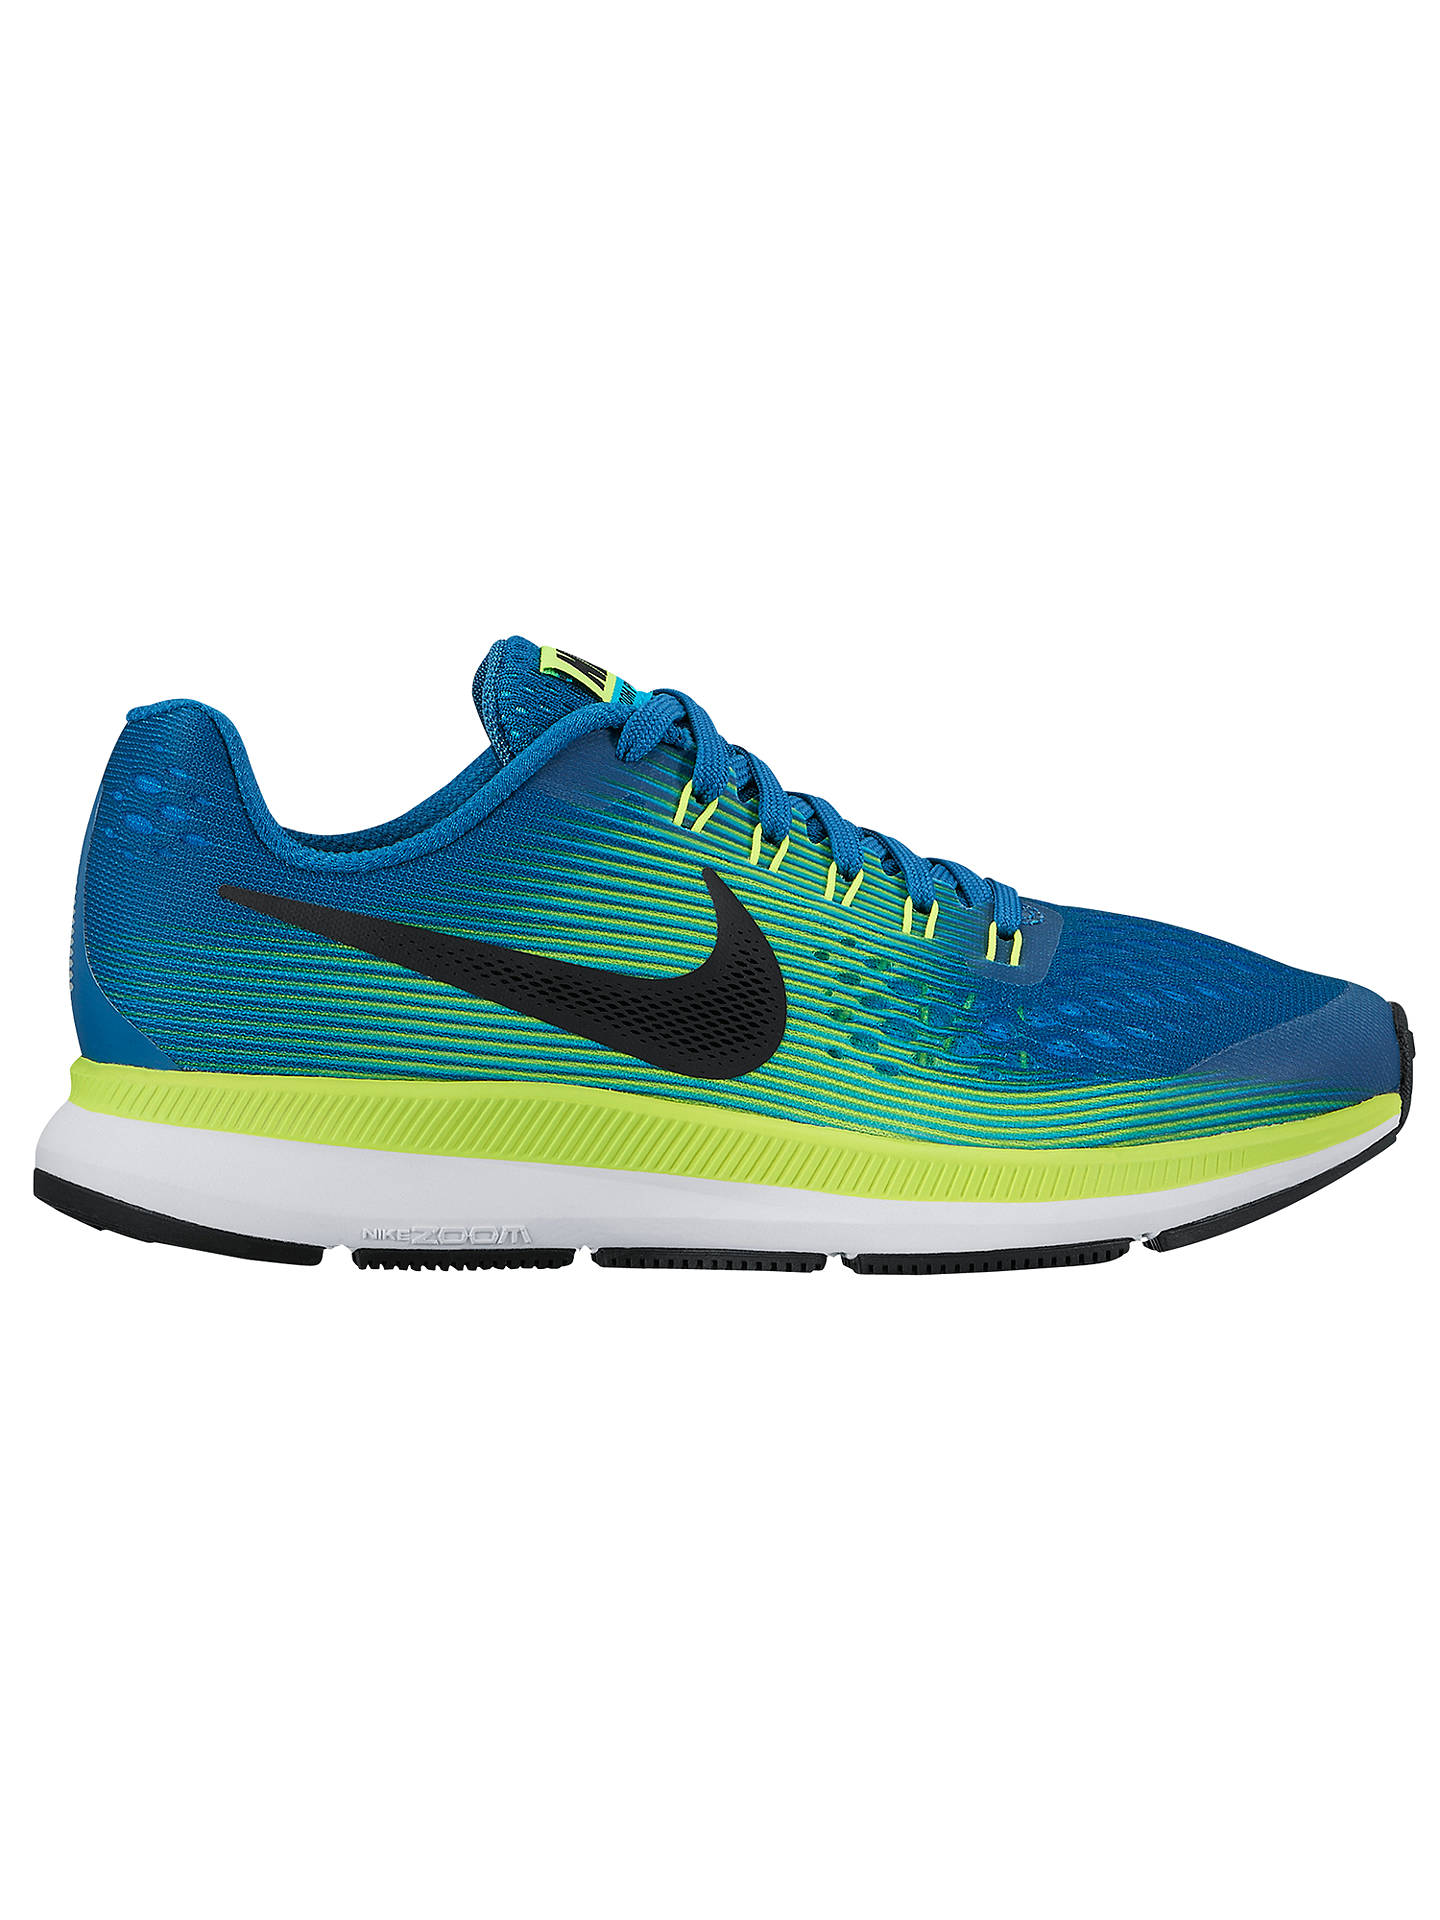 hot sale online 0a553 41f4b Buy Nike Children s Air Zoom Pegasus 34 (GS) Running Shoes, Blue, 3 ...